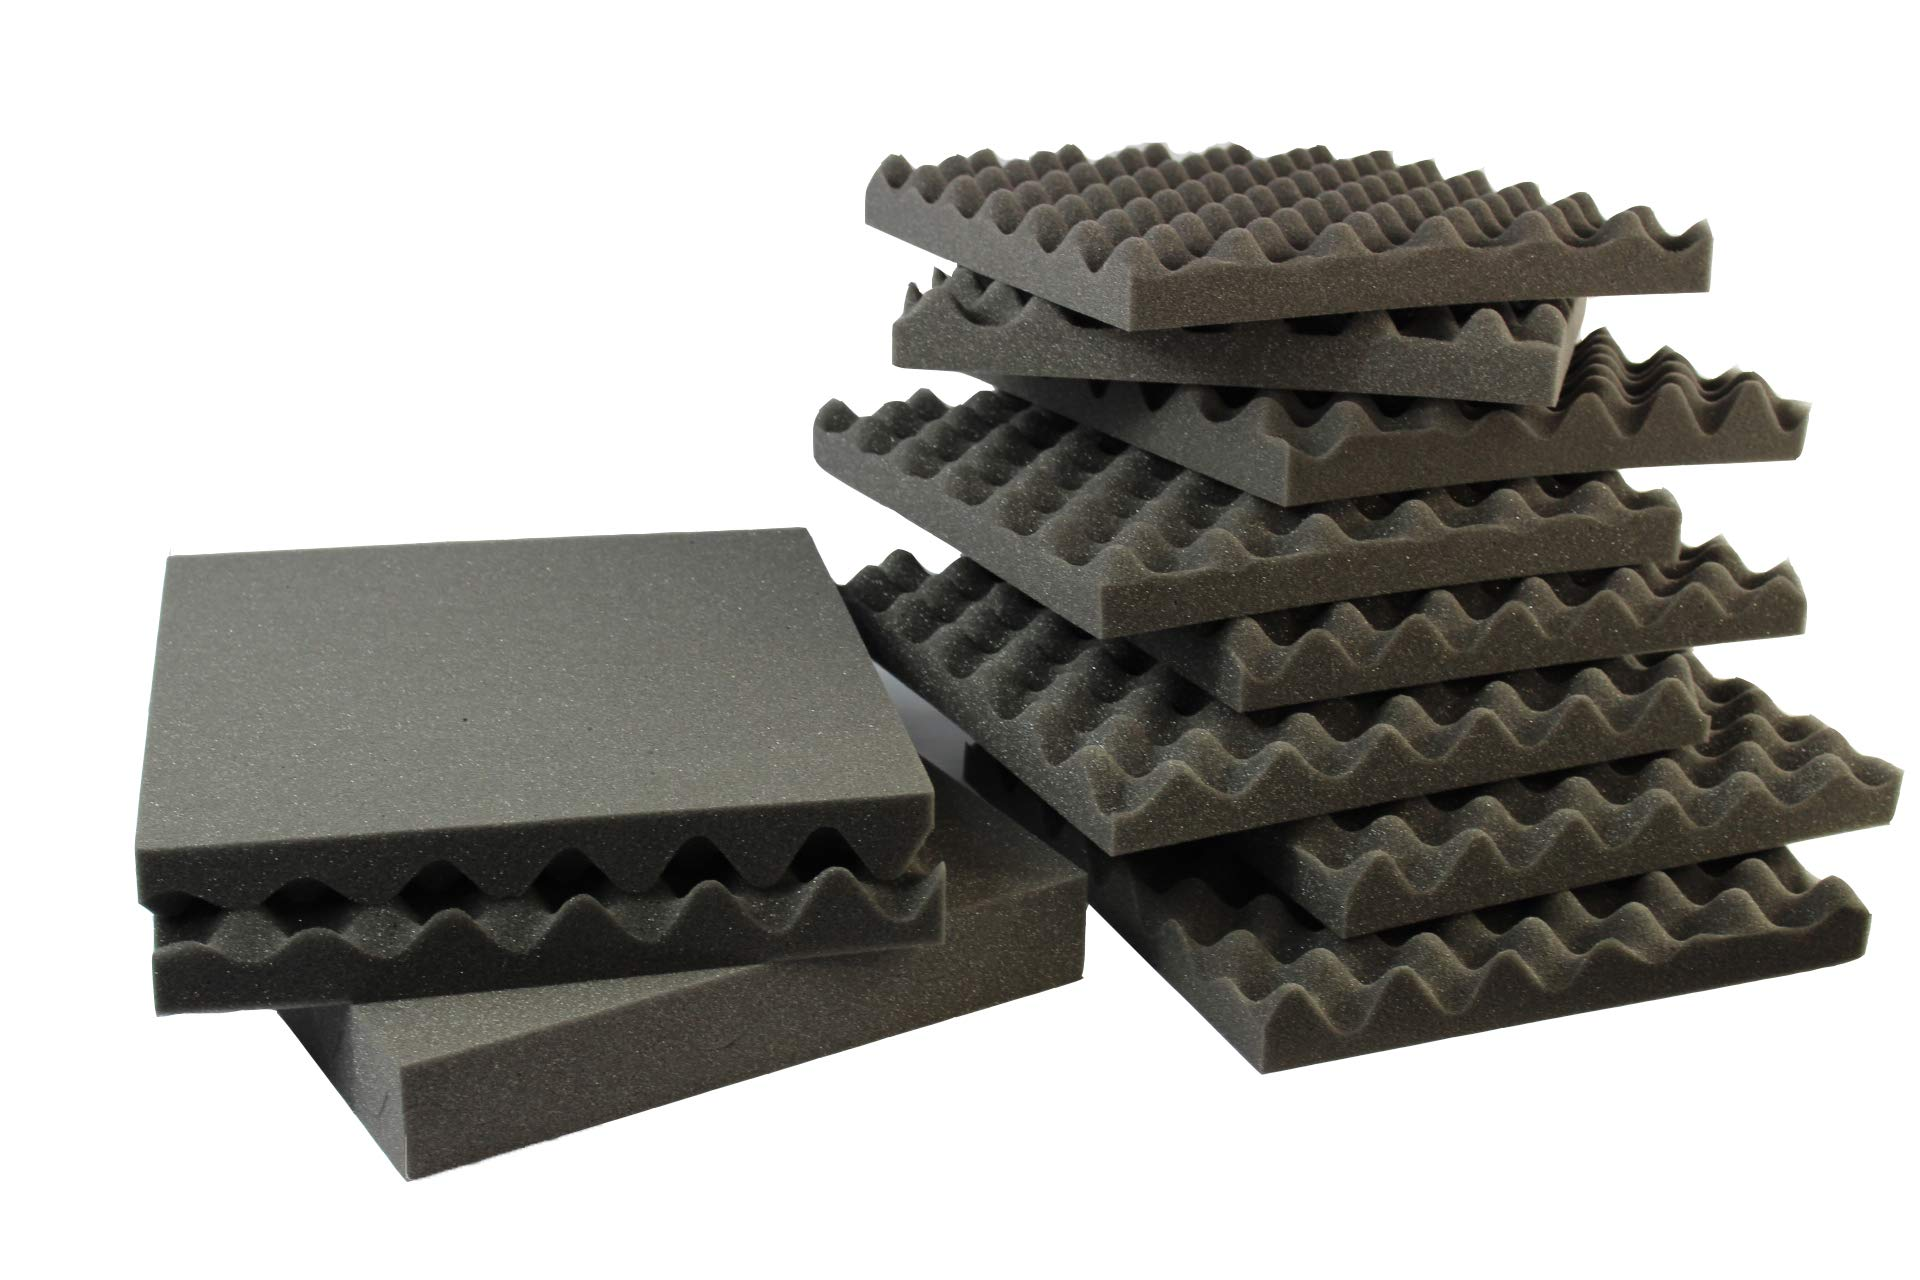 """Mybecca 6 Pack Acoustic Eggcrate Soundproofing Foam Wall Panels 1.5"""" X 12"""" X 12"""" inch, Made in USA - Color: Charcoal"""